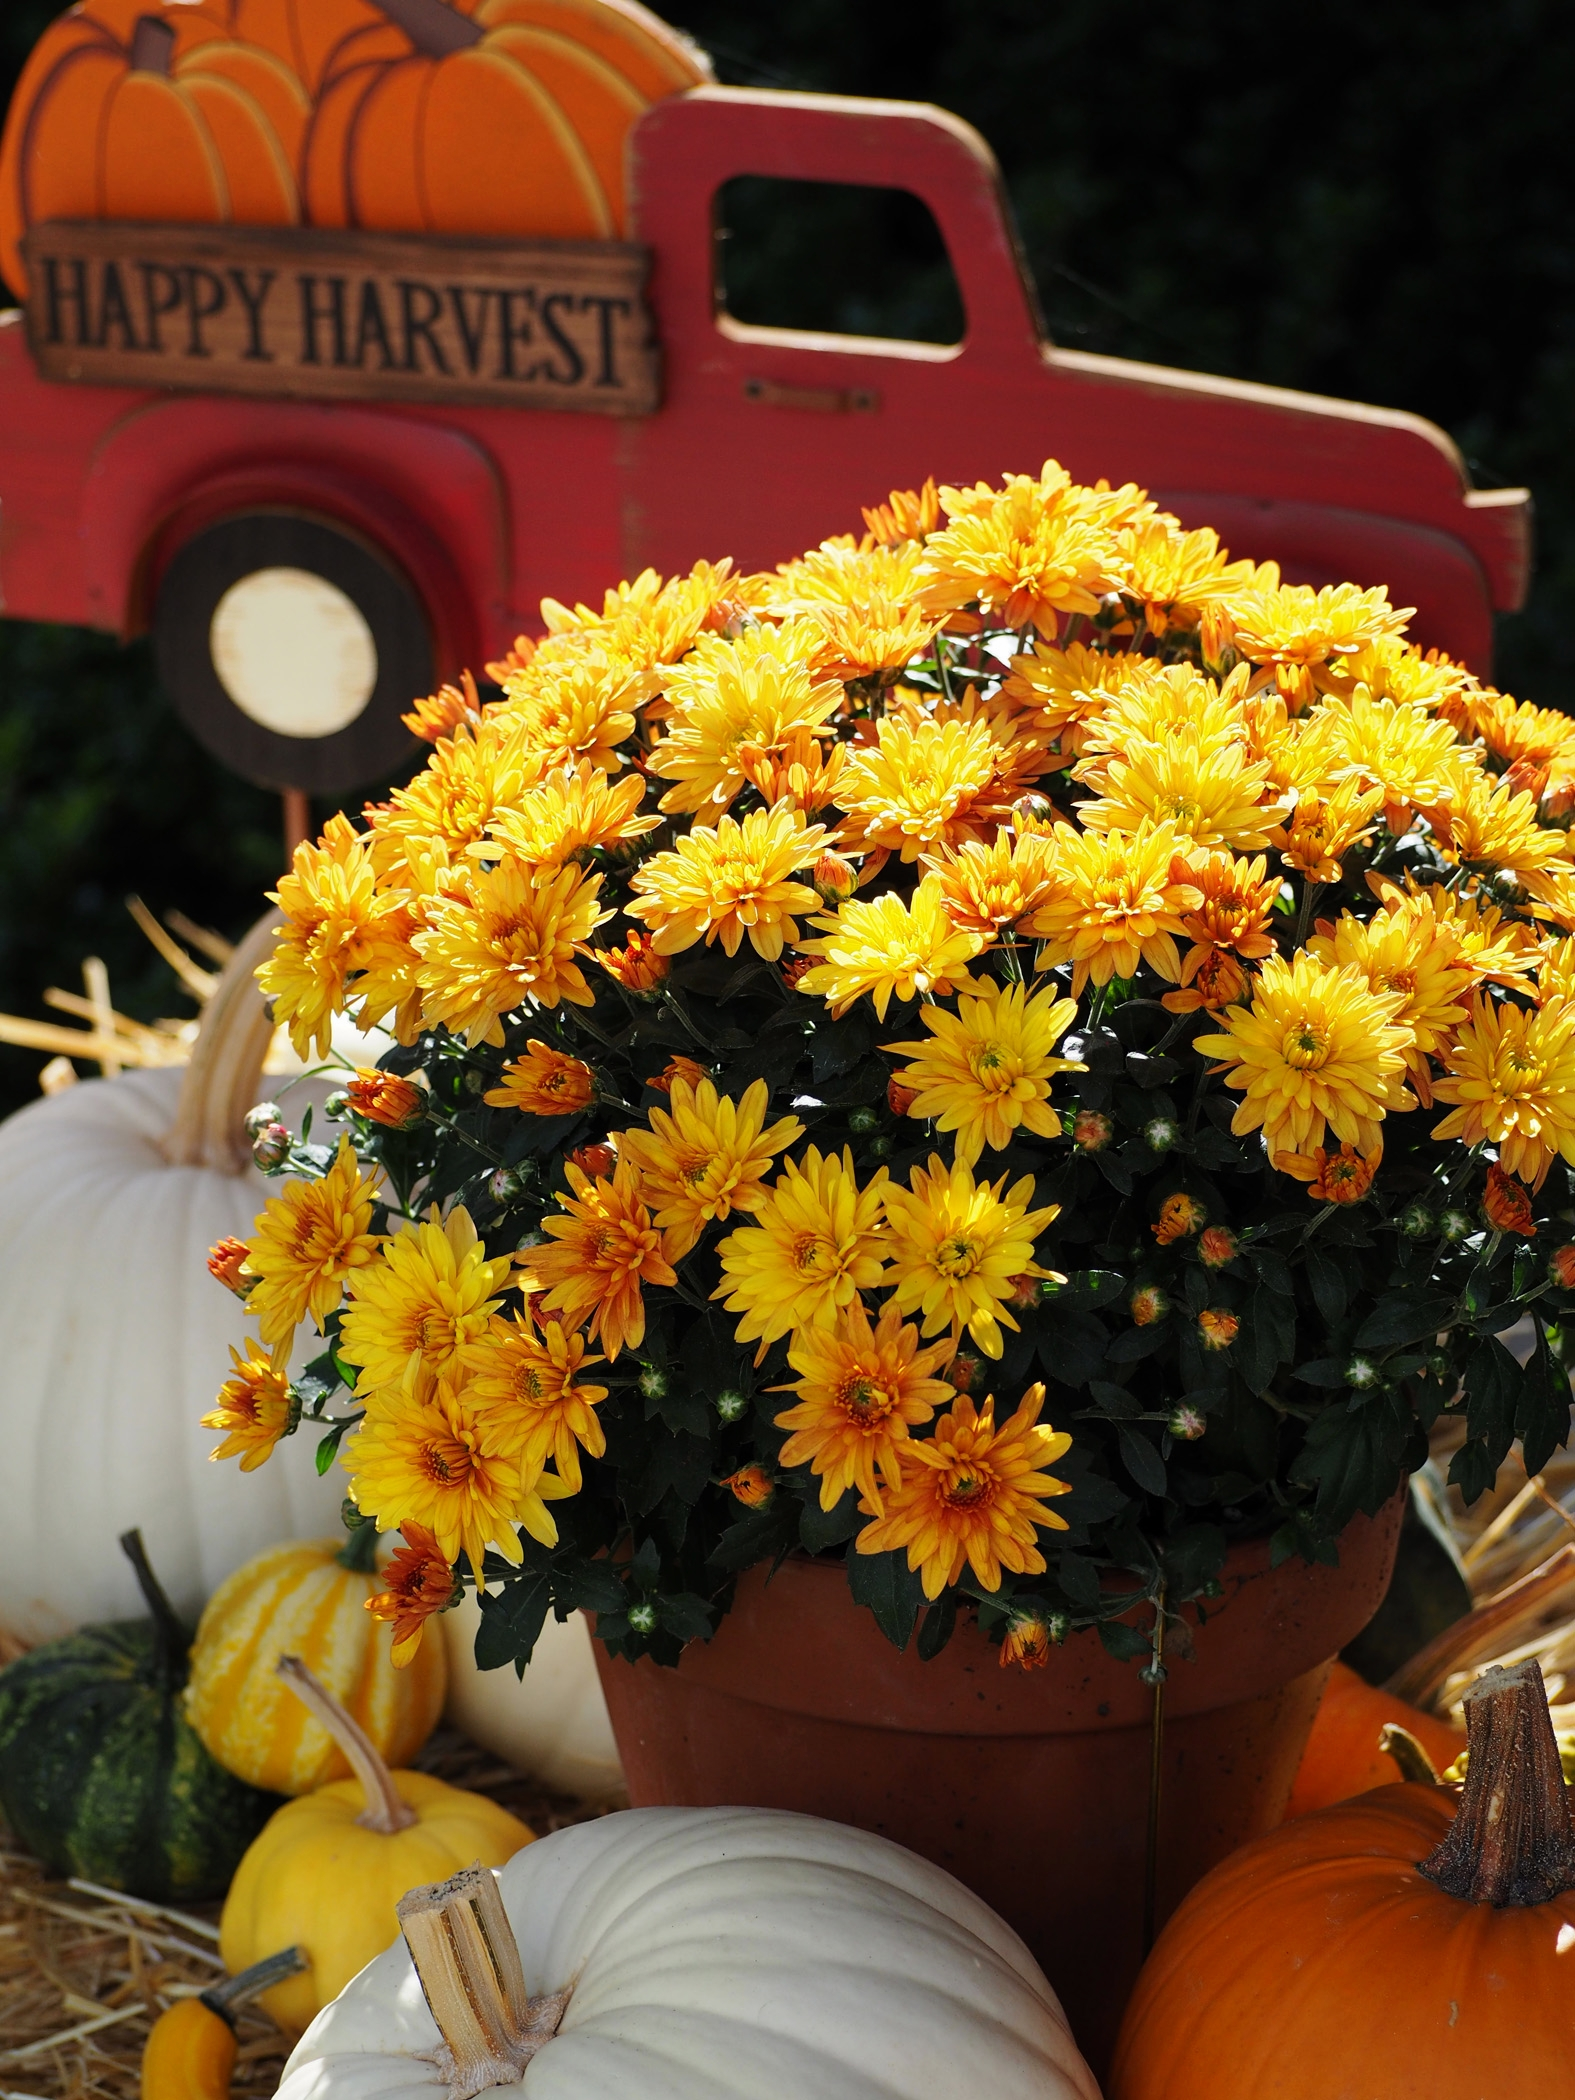 Happy Harvest! I had to have that adorable sign purchased at a local farm store here in our town.